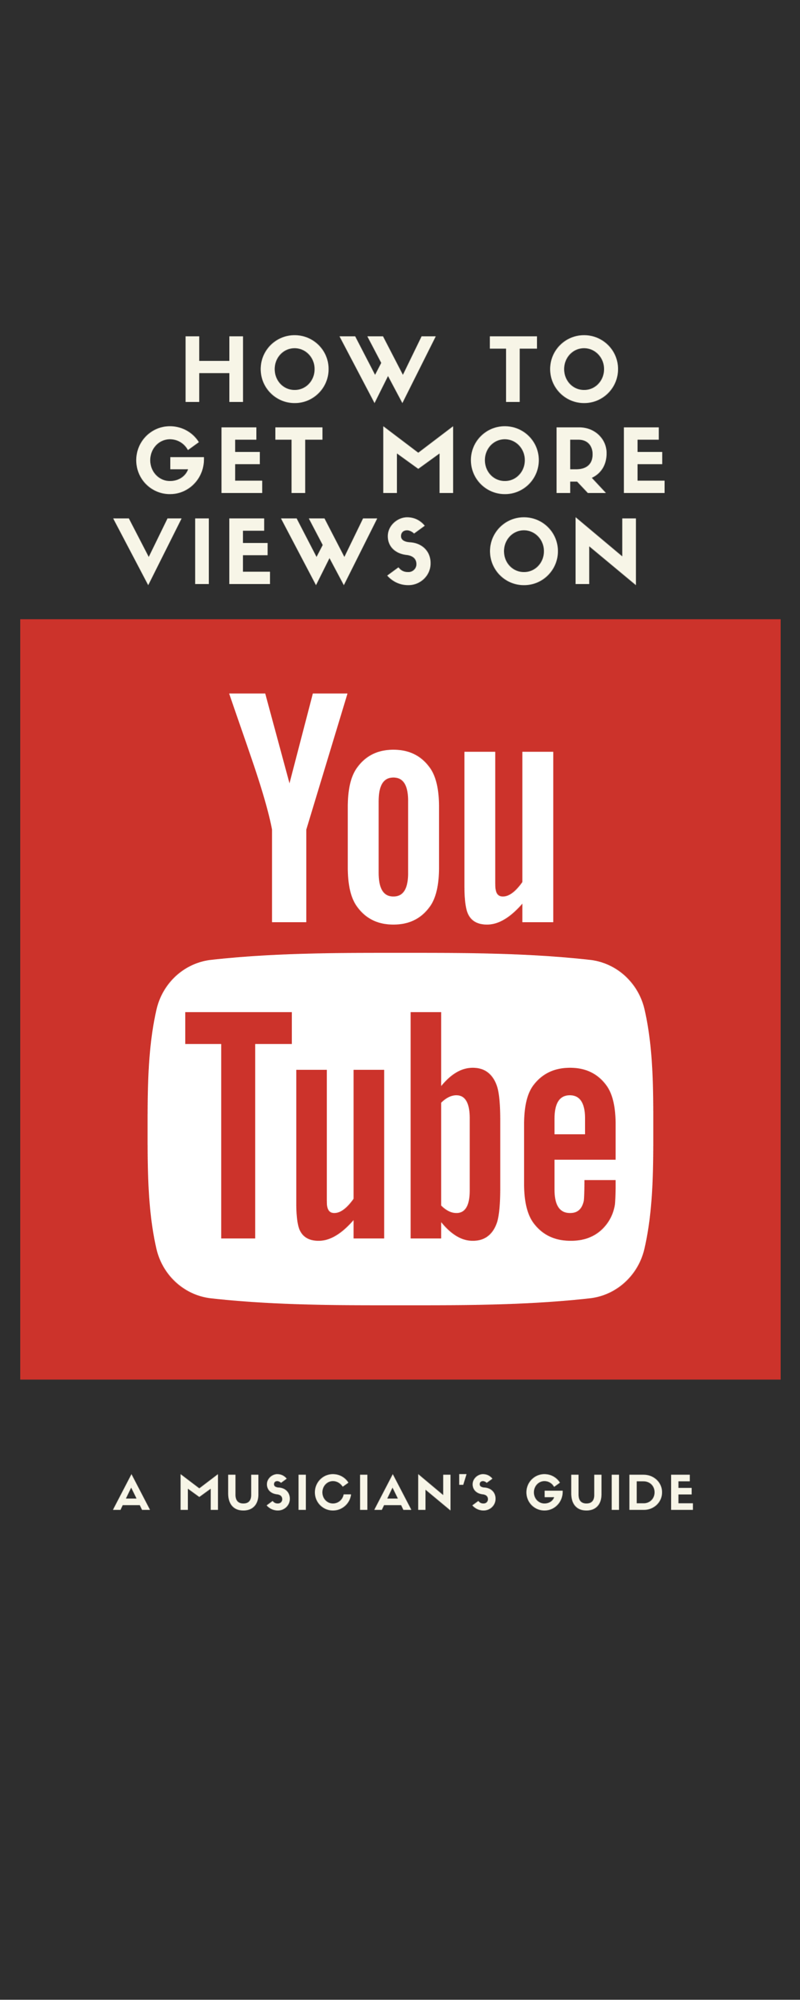 Youtube Gets Updated With Material Design Apk Download: How To Get More Views On Youtube